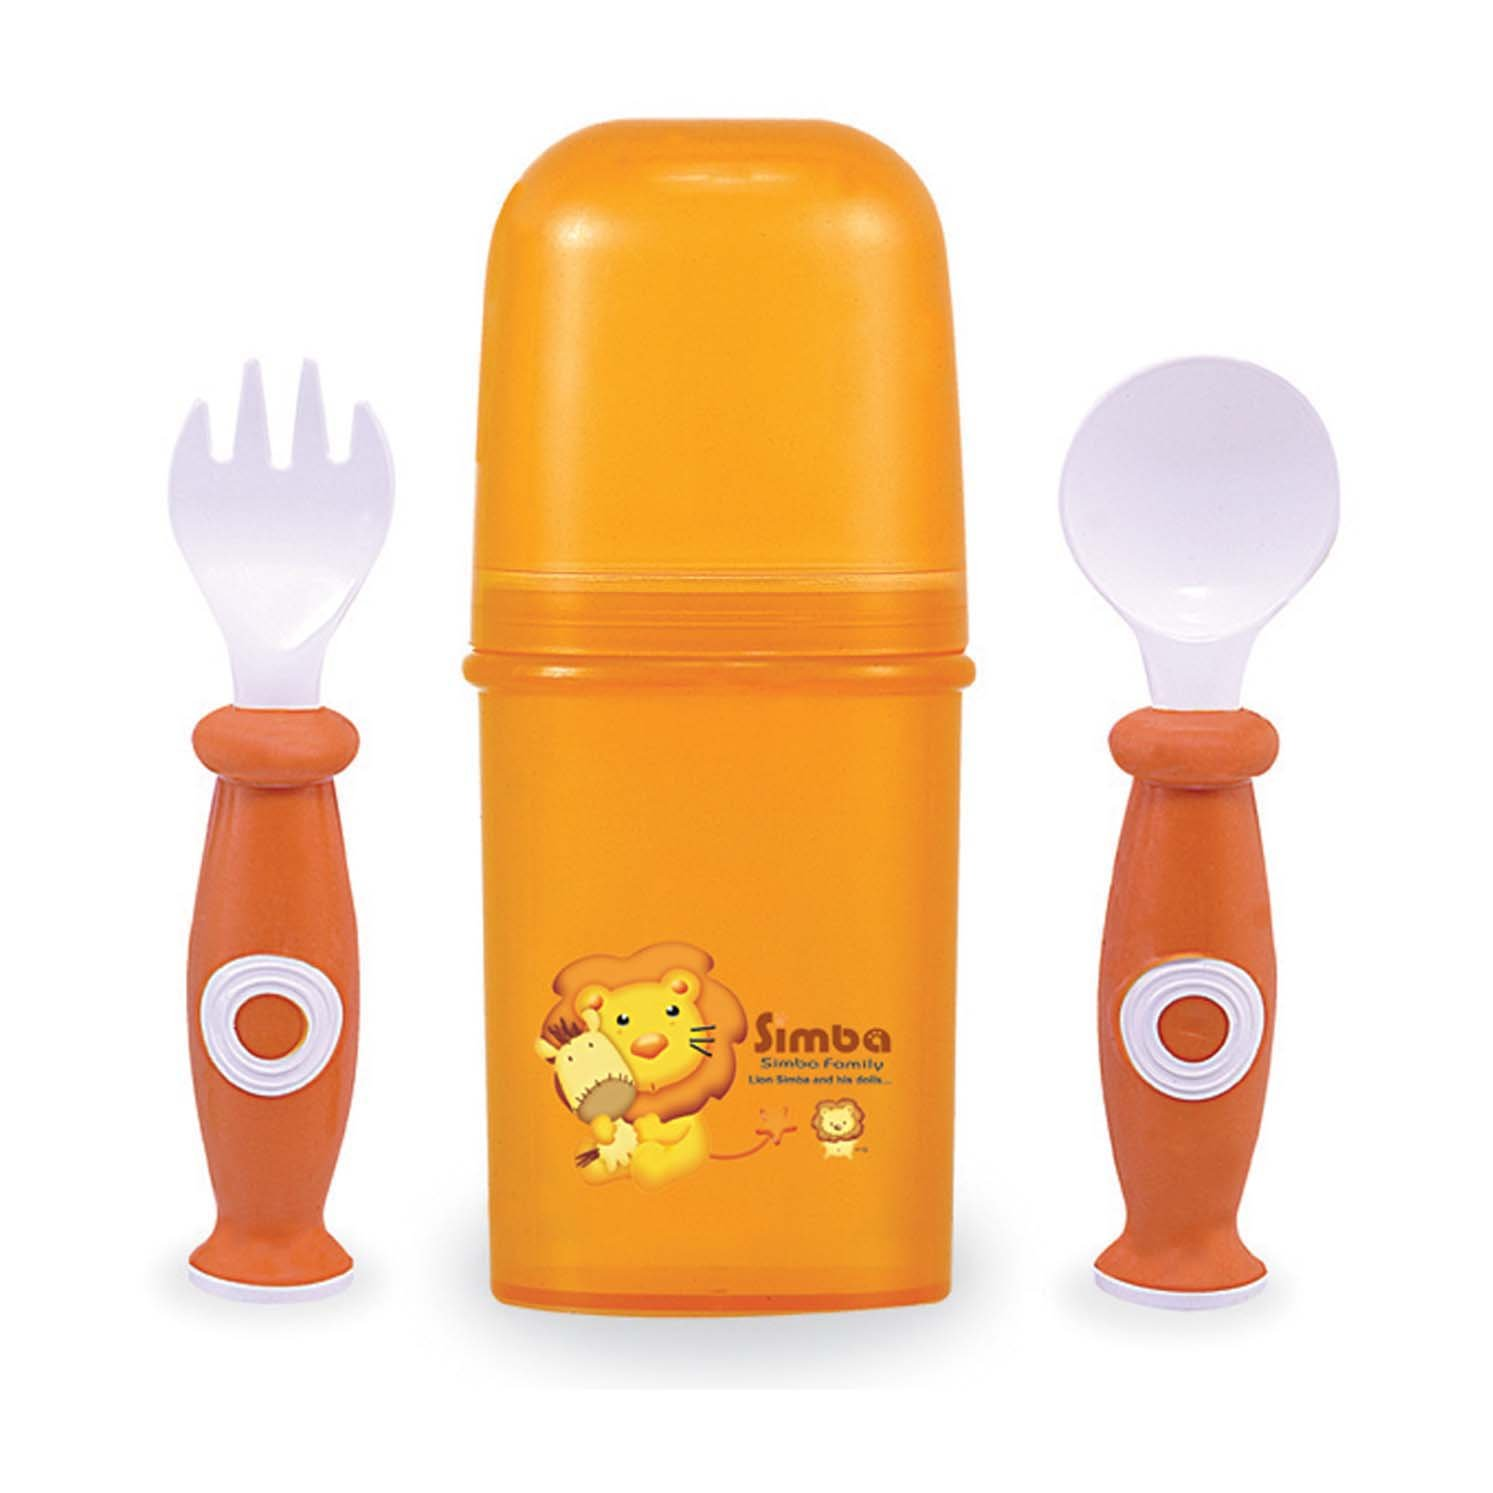 新品即決 Simba Fork and Spoon Set Set with Storage B00BV0QFFC with Case, Orange by Simba B00BV0QFFC, 大玉村:7c258588 --- a0267596.xsph.ru